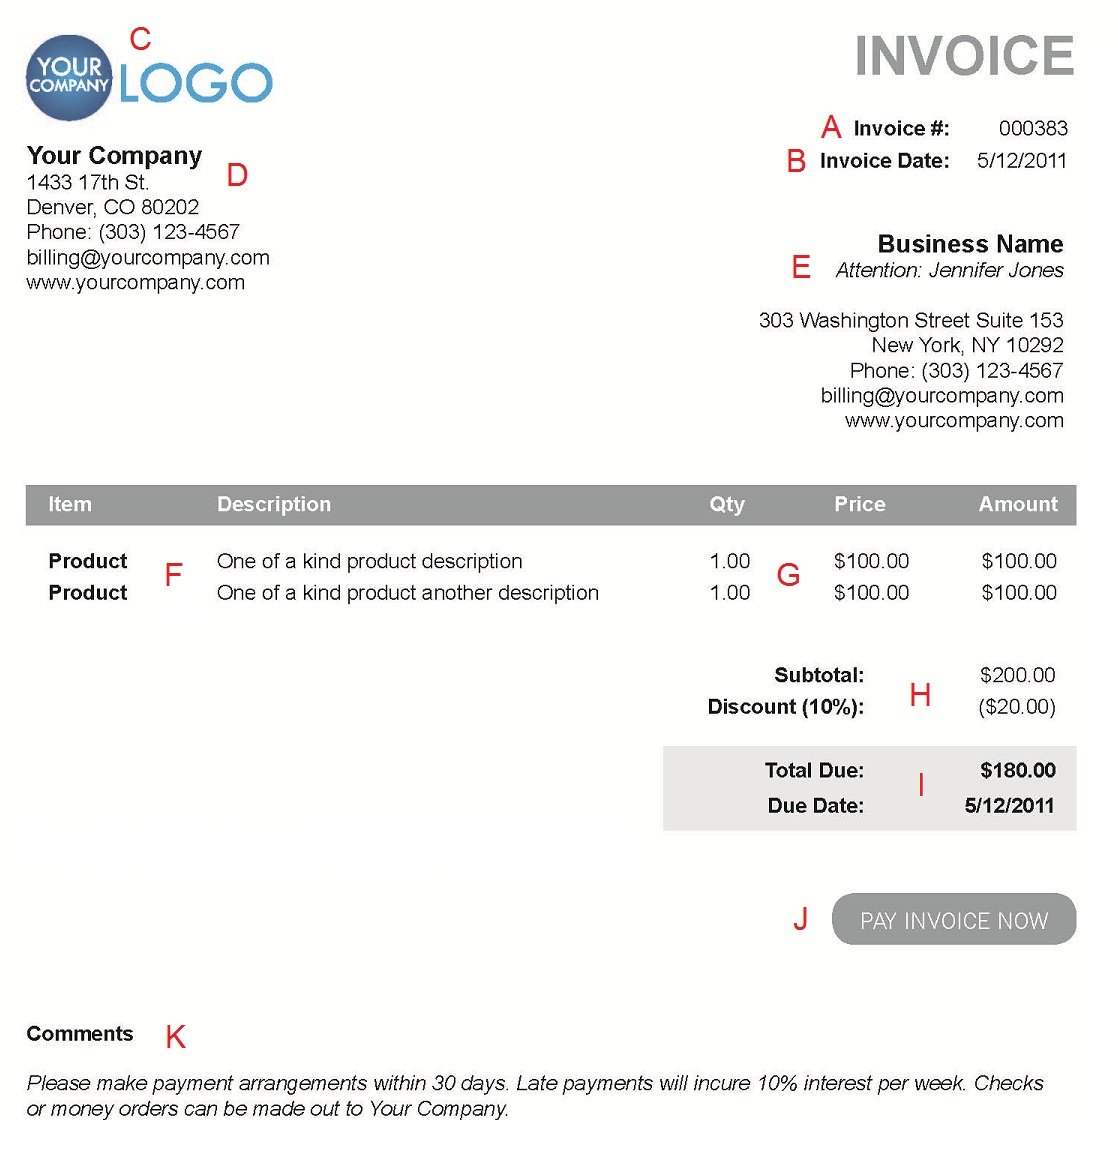 Ultrablogus  Unique The  Different Sections Of An Electronic Payment Invoice With Goodlooking A  With Endearing Courtyard Marriott Receipt Also Car Receipt In Addition Uhaul Receipt And Receipt Books Custom As Well As Written Receipt Additionally Scanning Receipts Into Quickbooks From Paysimplecom With Ultrablogus  Goodlooking The  Different Sections Of An Electronic Payment Invoice With Endearing A  And Unique Courtyard Marriott Receipt Also Car Receipt In Addition Uhaul Receipt From Paysimplecom